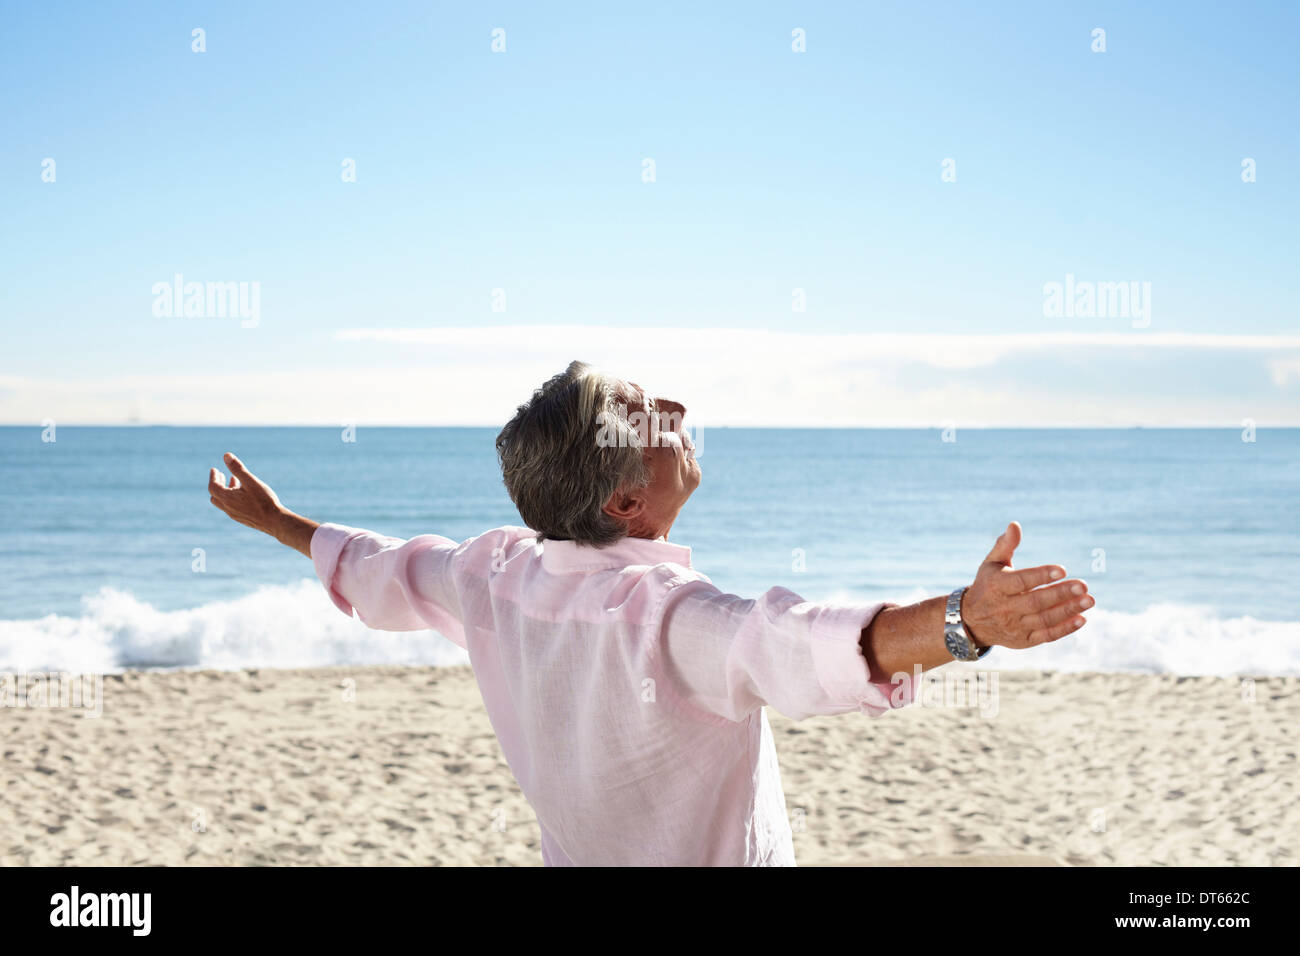 Senior man on beach with arms outspread - Stock Image